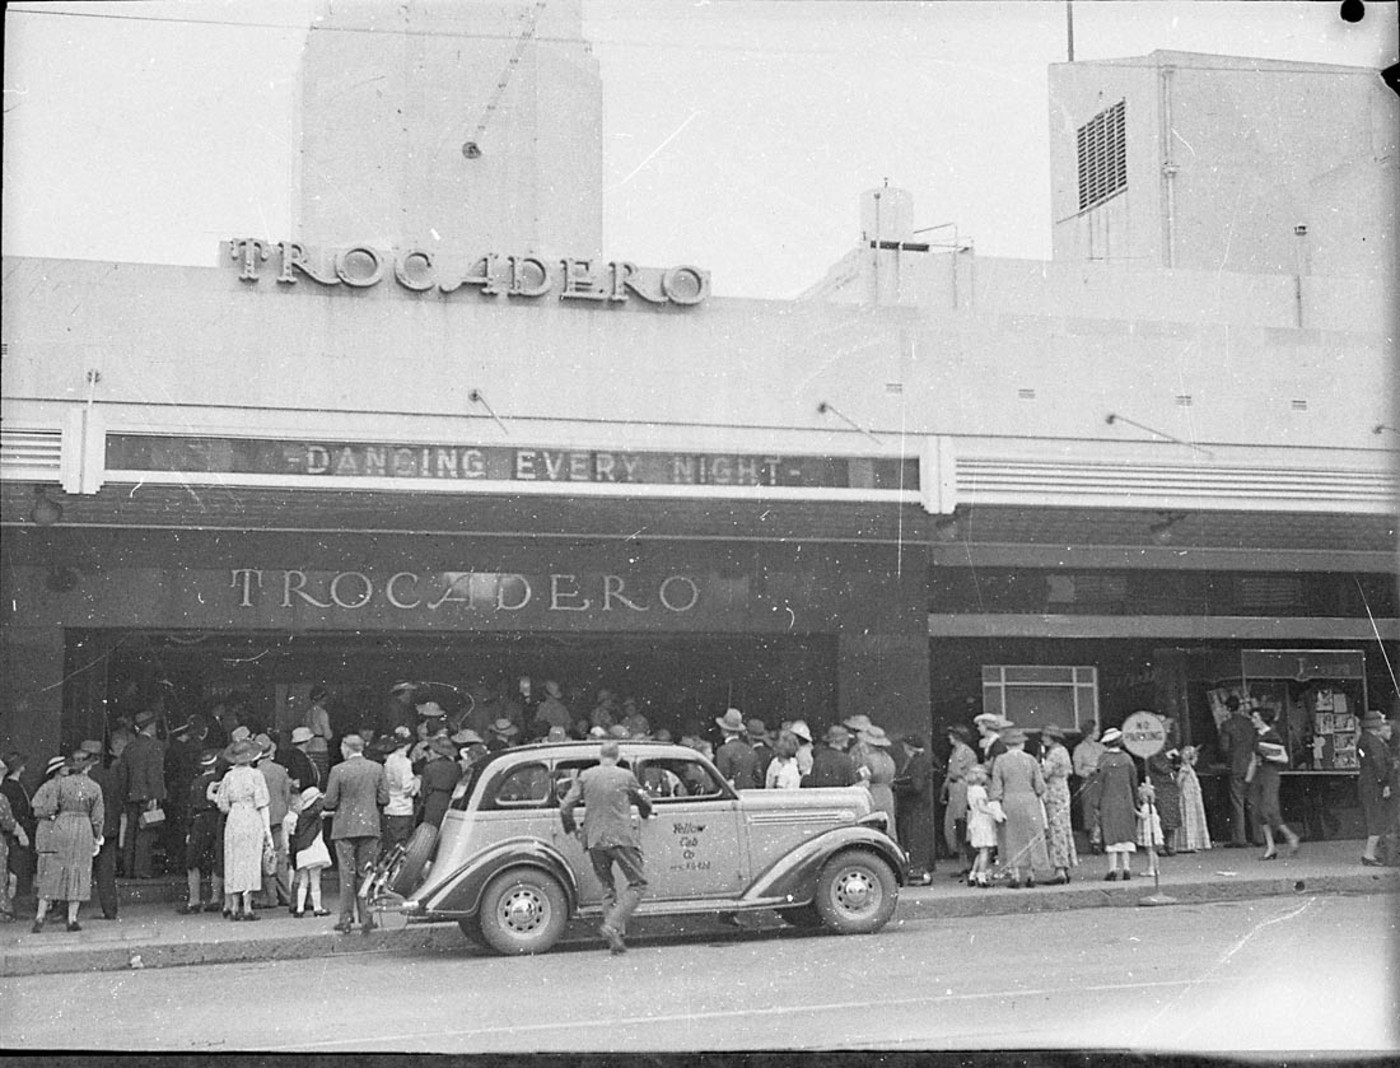 The Trocadero: Sydney's most glamorous dance hall